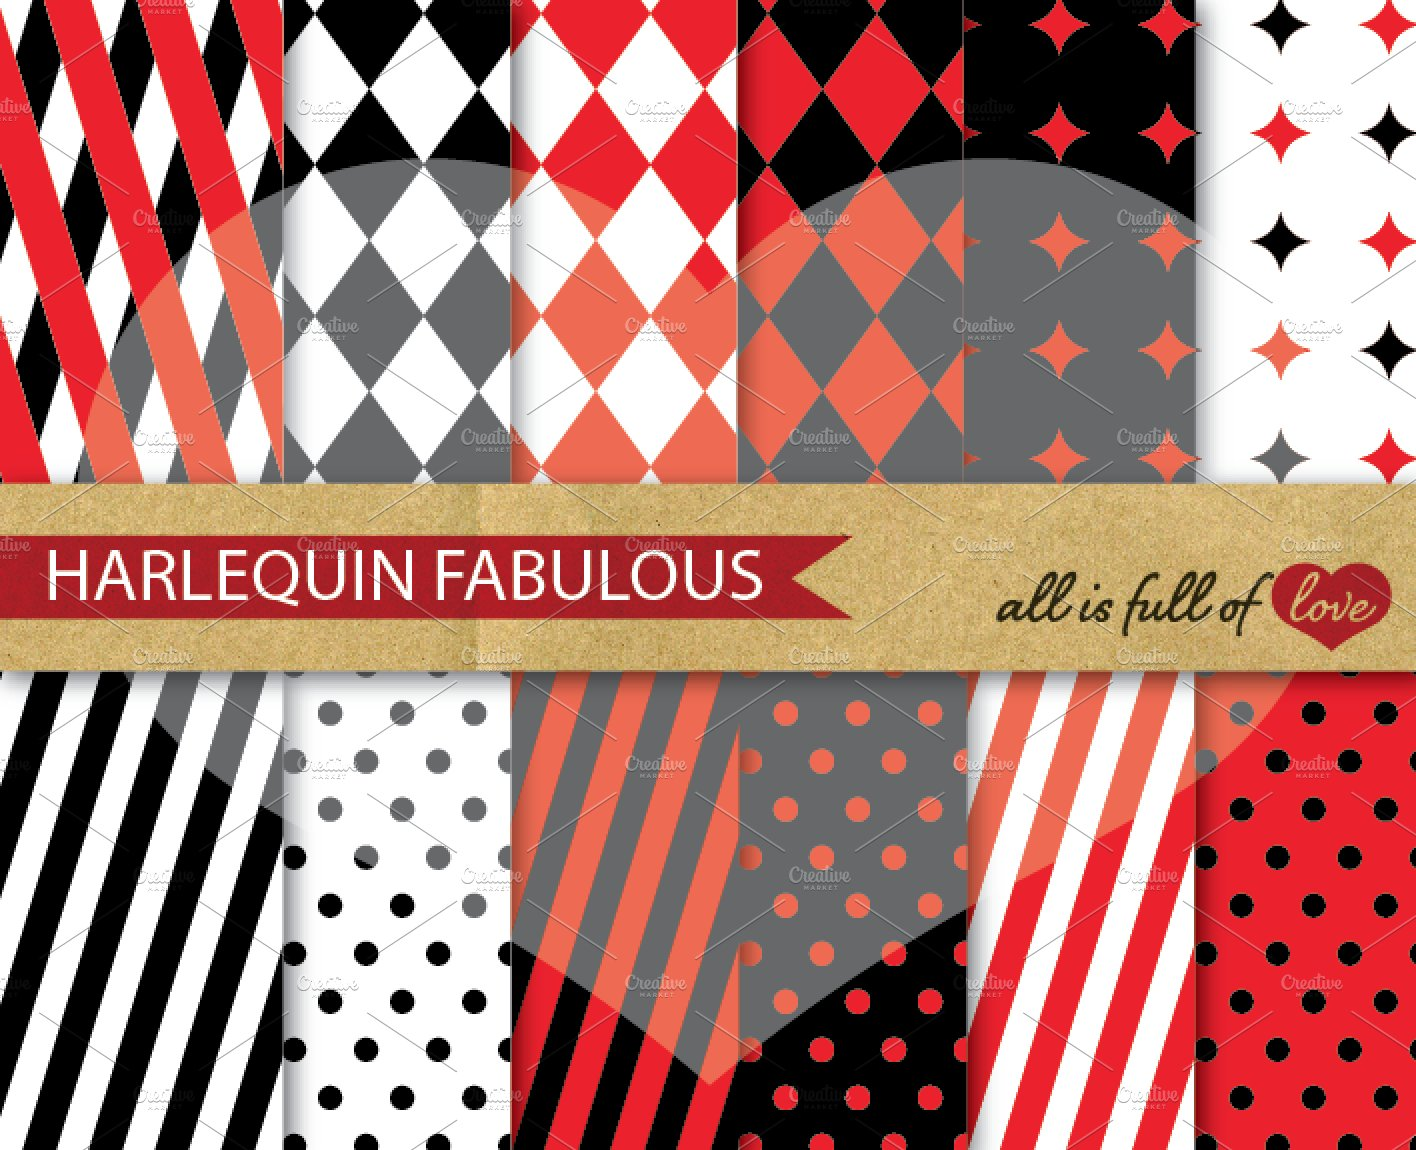 Harlequin Papers Red Black Patterns